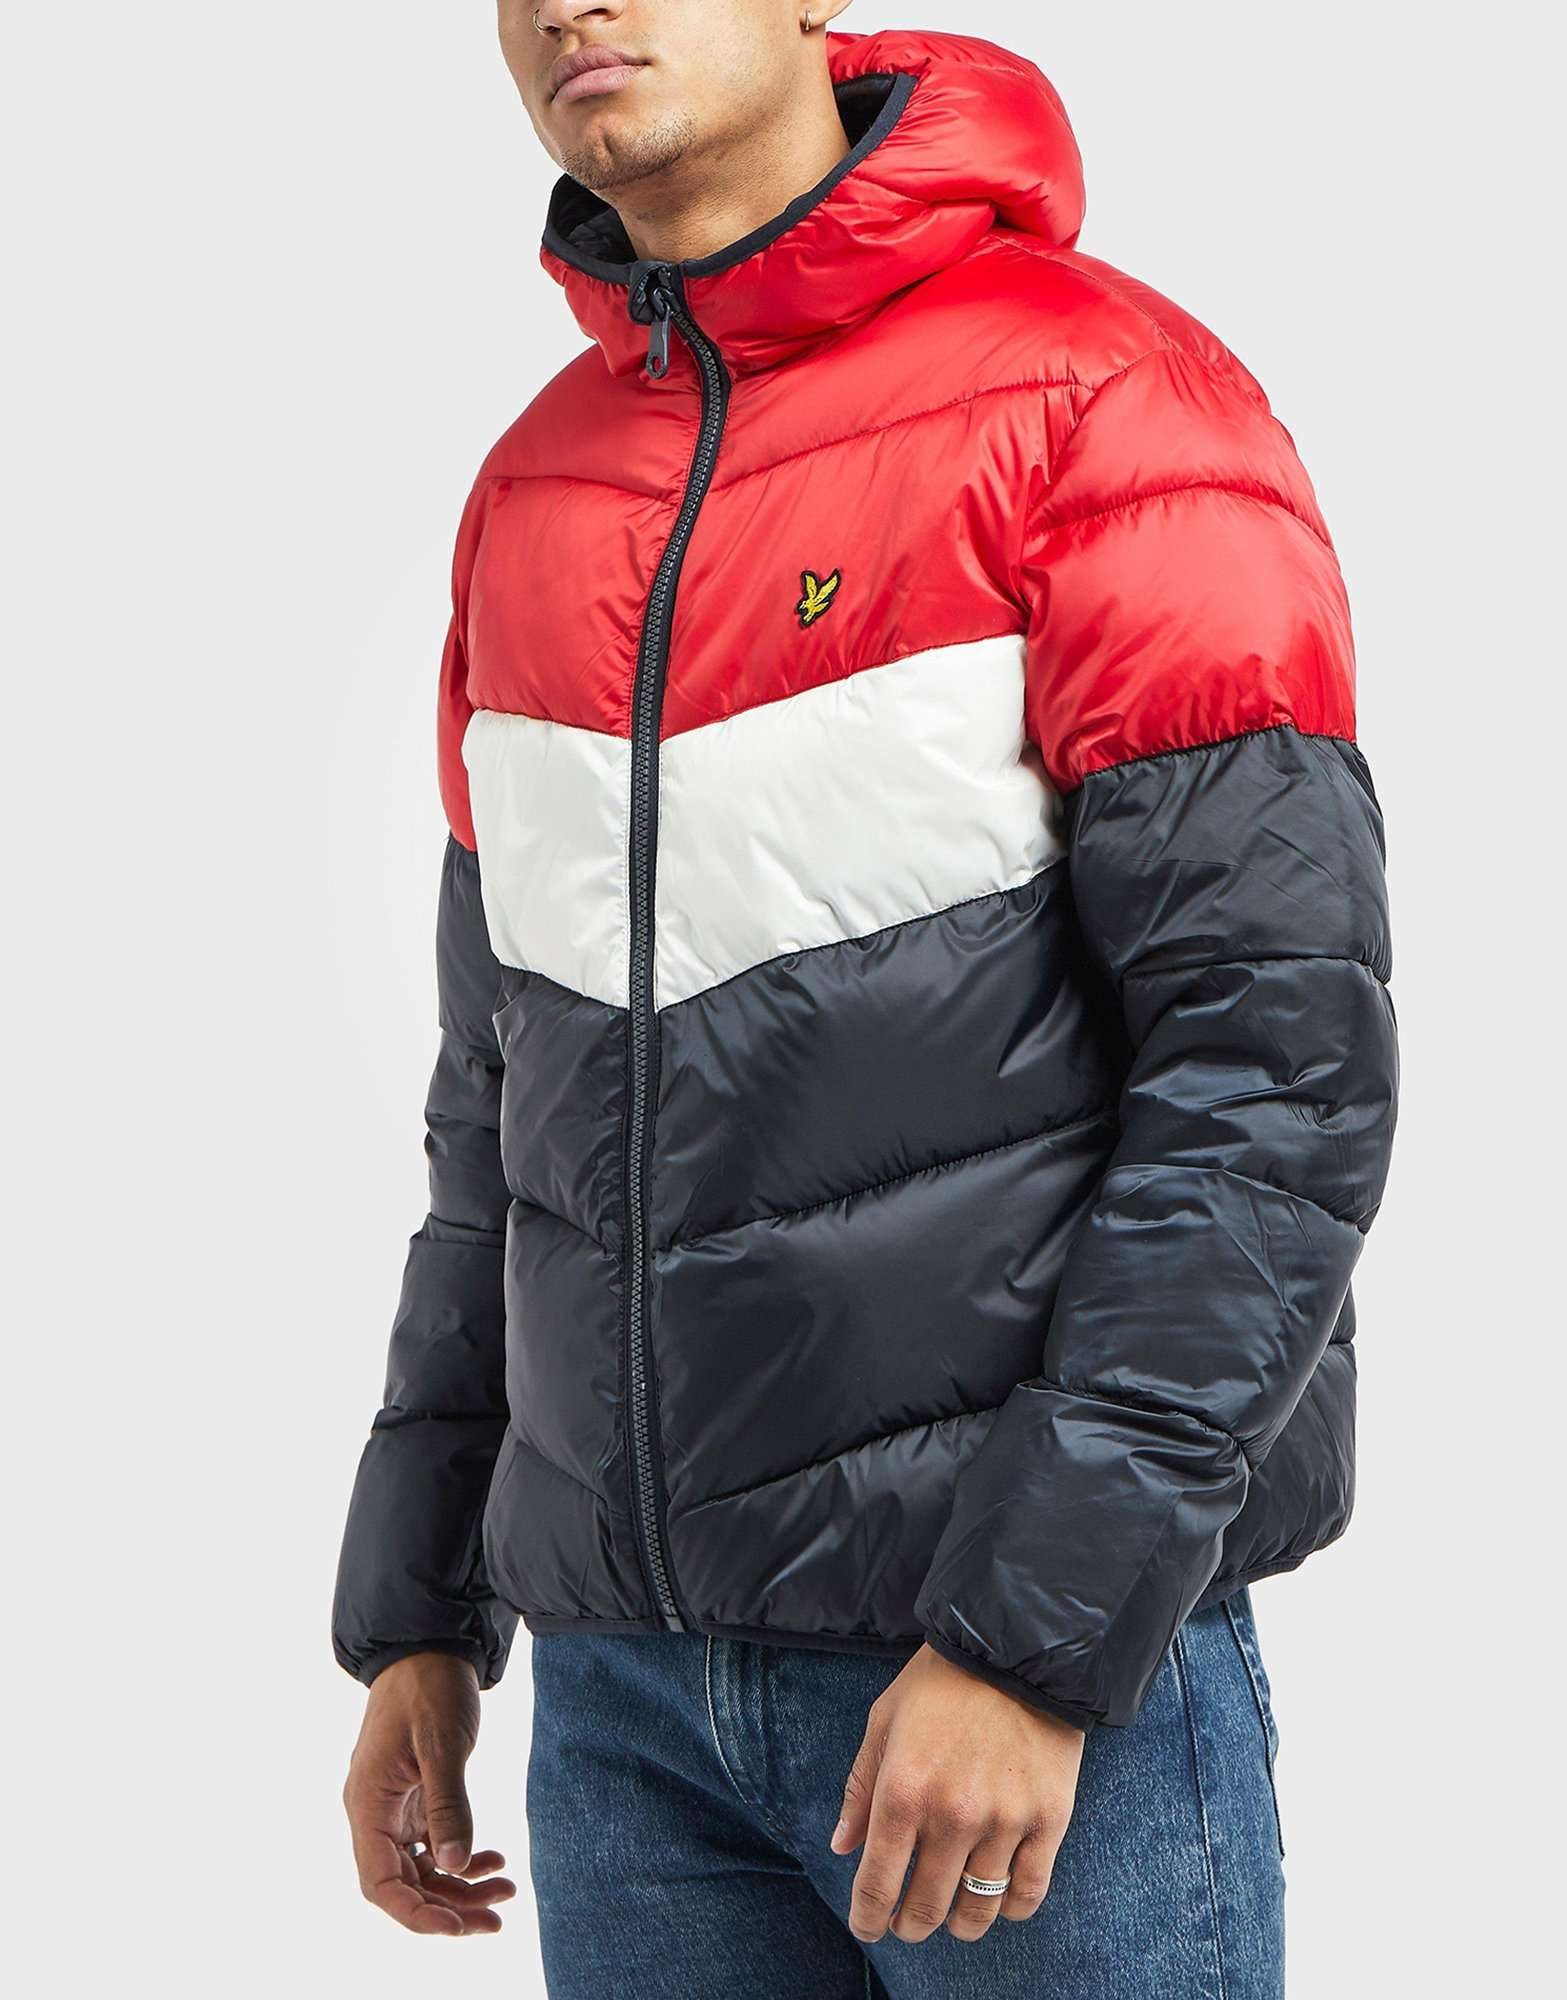 Lyle & Scott Colour Block Padded Jacket - Online Exclusive